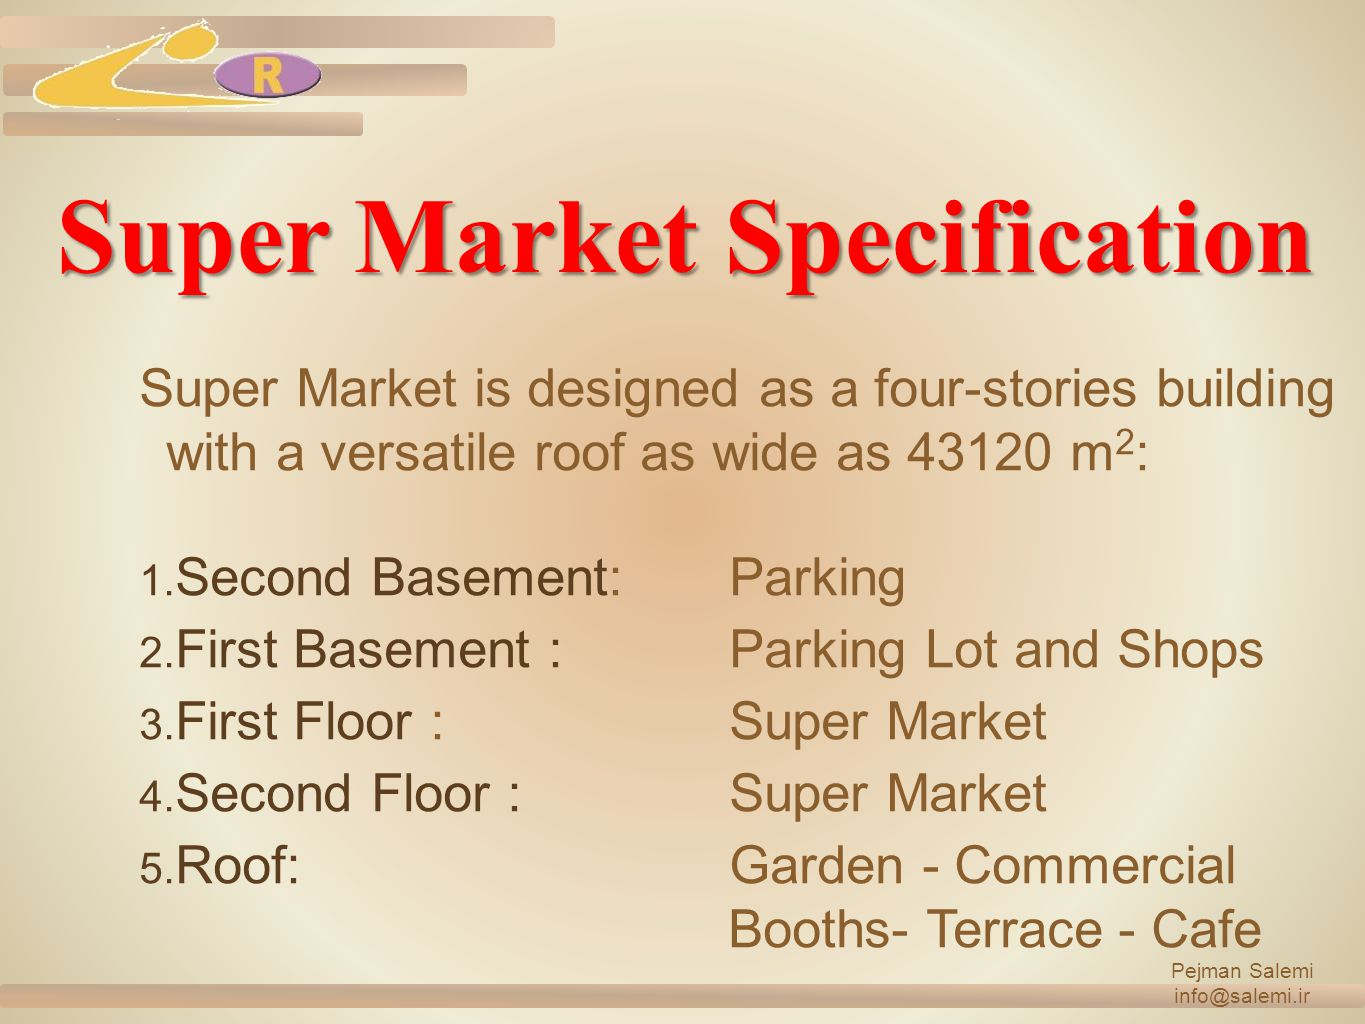 Super Market Specification